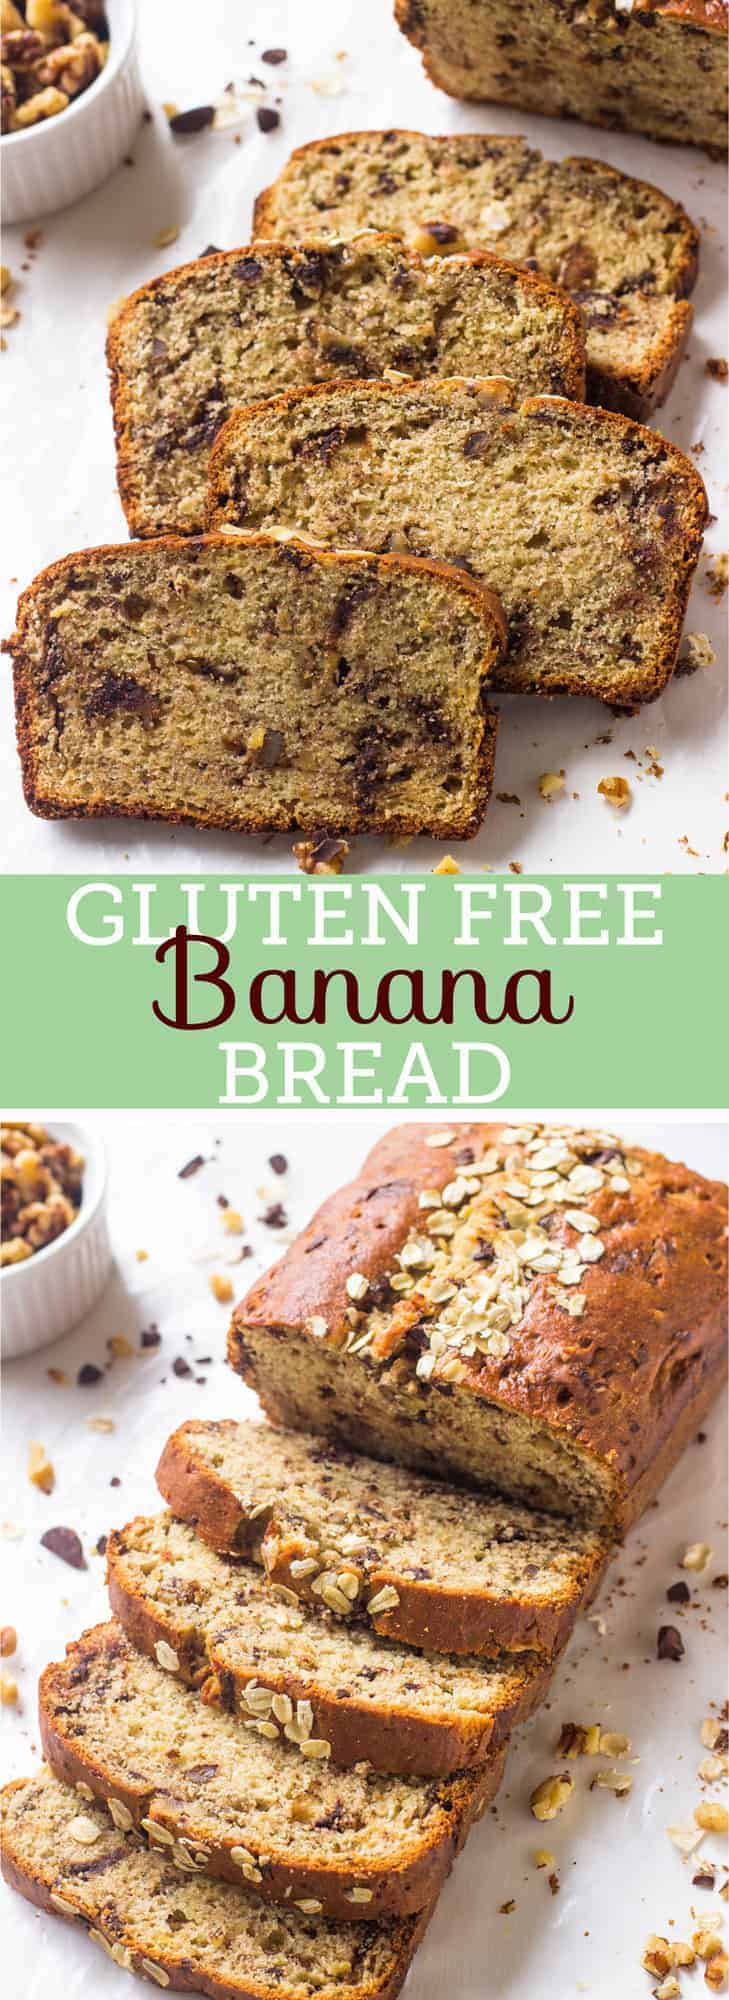 This Gluten Free Banana Bread is a tried and true banana bread! It's soft, moist, healthy and refined sugar free!-4